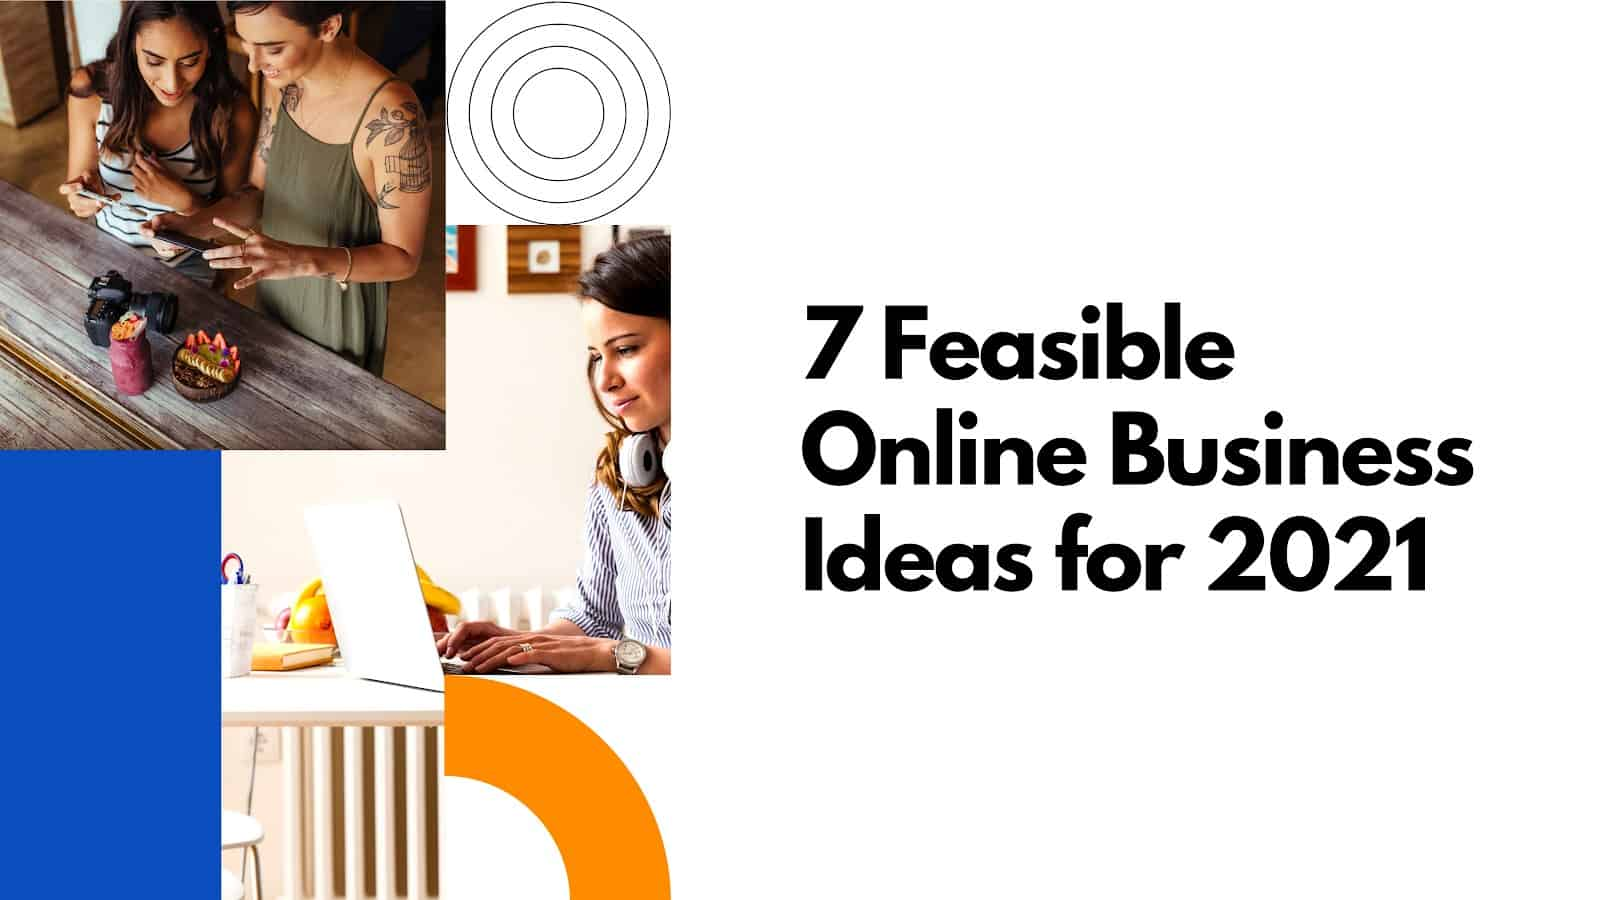 7 Feasible Online Business Ideas for 2021